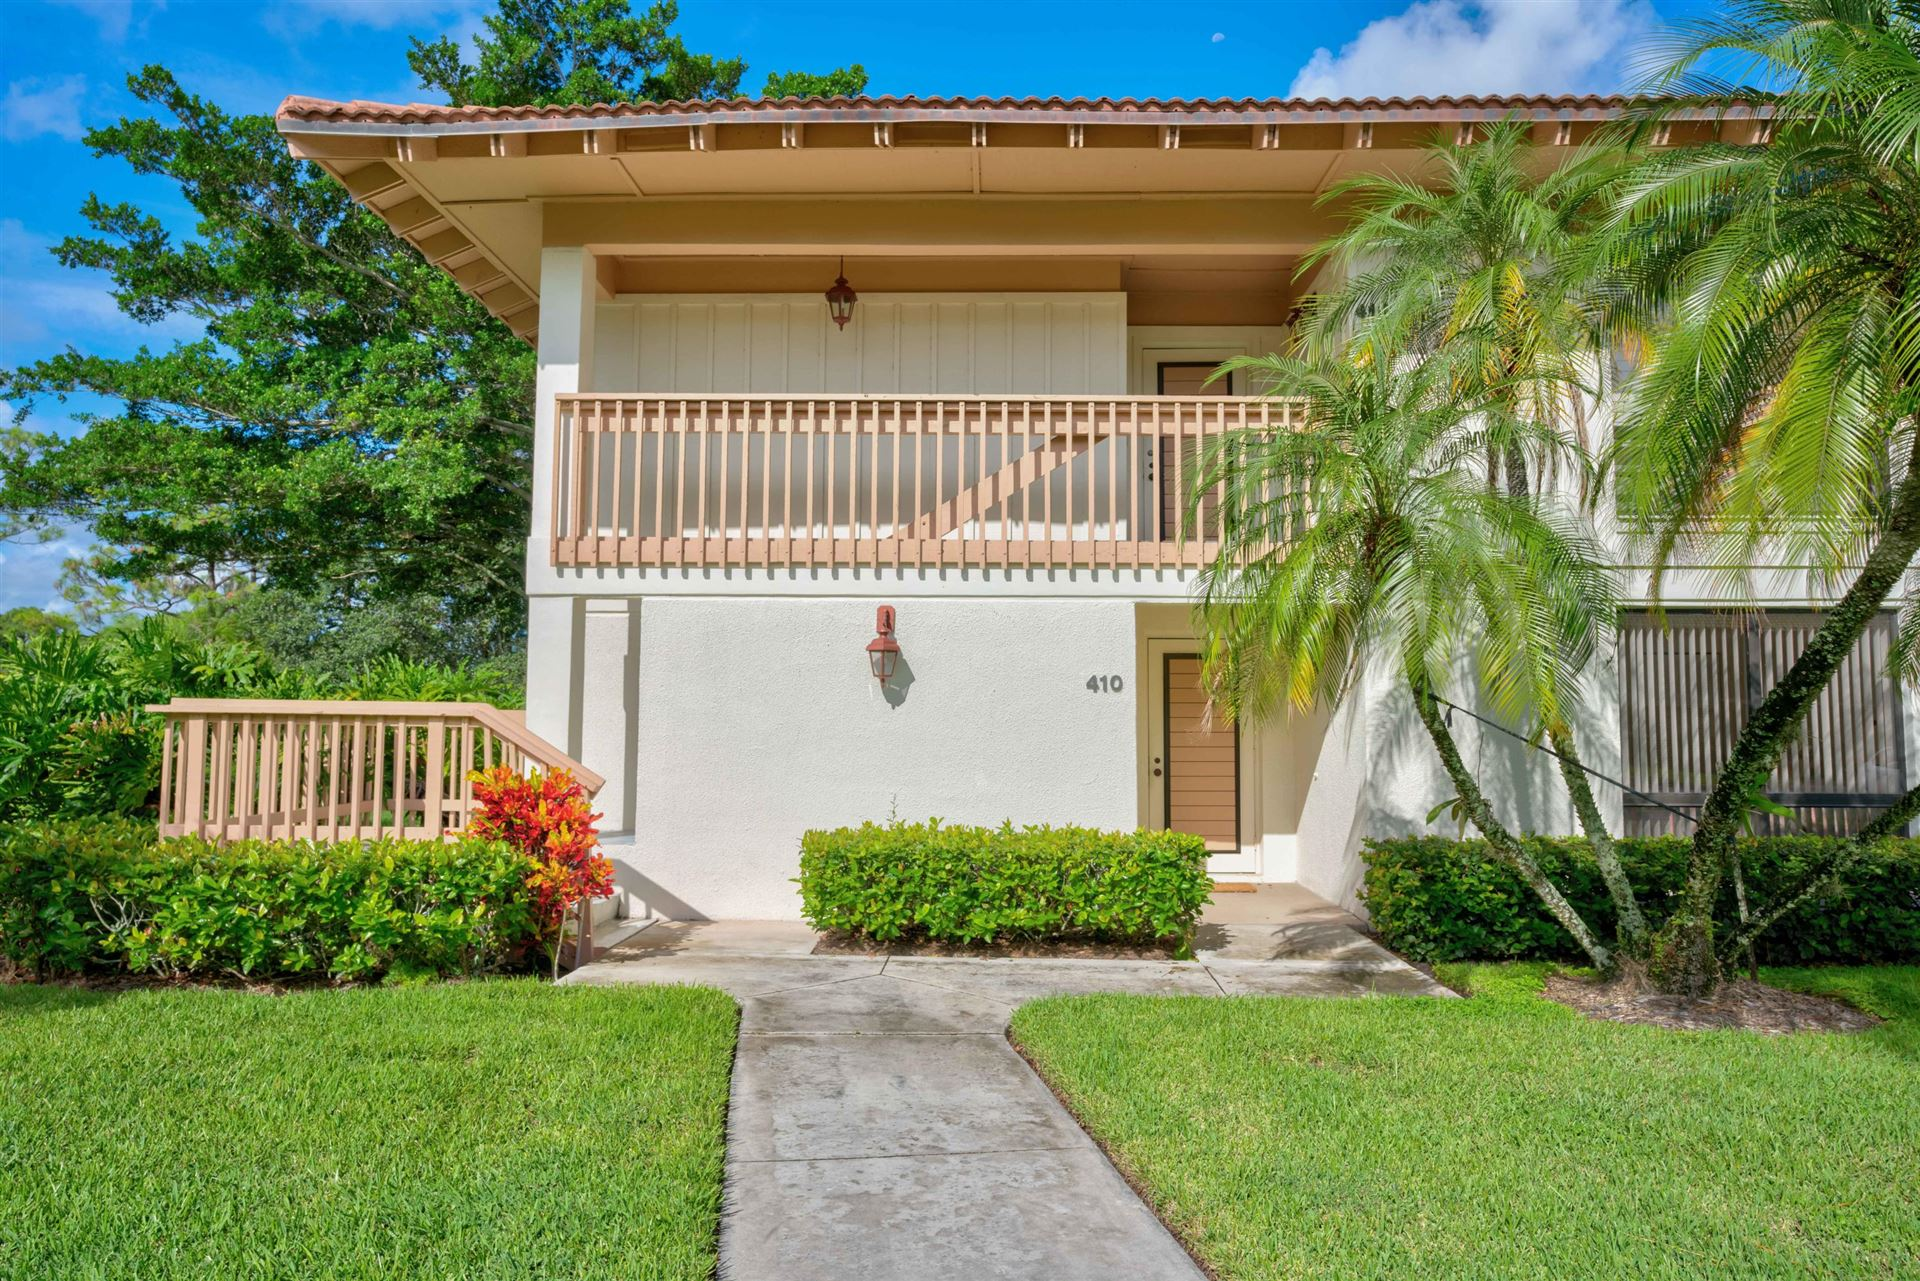 Photo of 410 Brackenwood Lane S, Palm Beach Gardens, FL 33418 (MLS # RX-10653305)